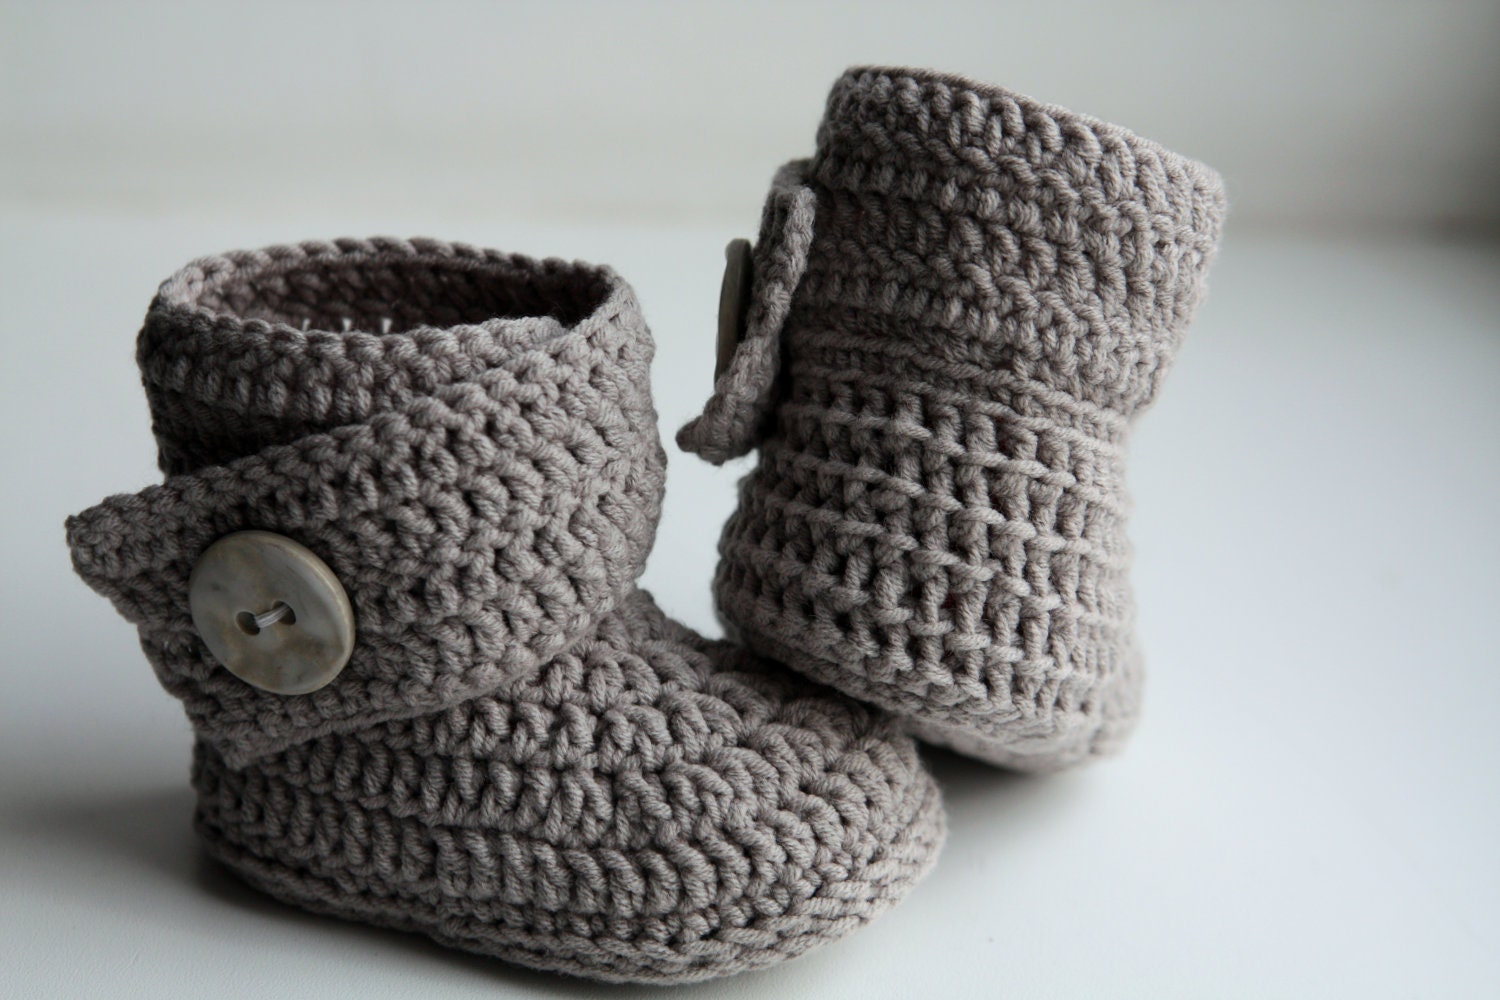 Free Crochet Pattern Ugg Boots : Crochet ugg boot pattern. PDF. This is a PATTERN for crocheted